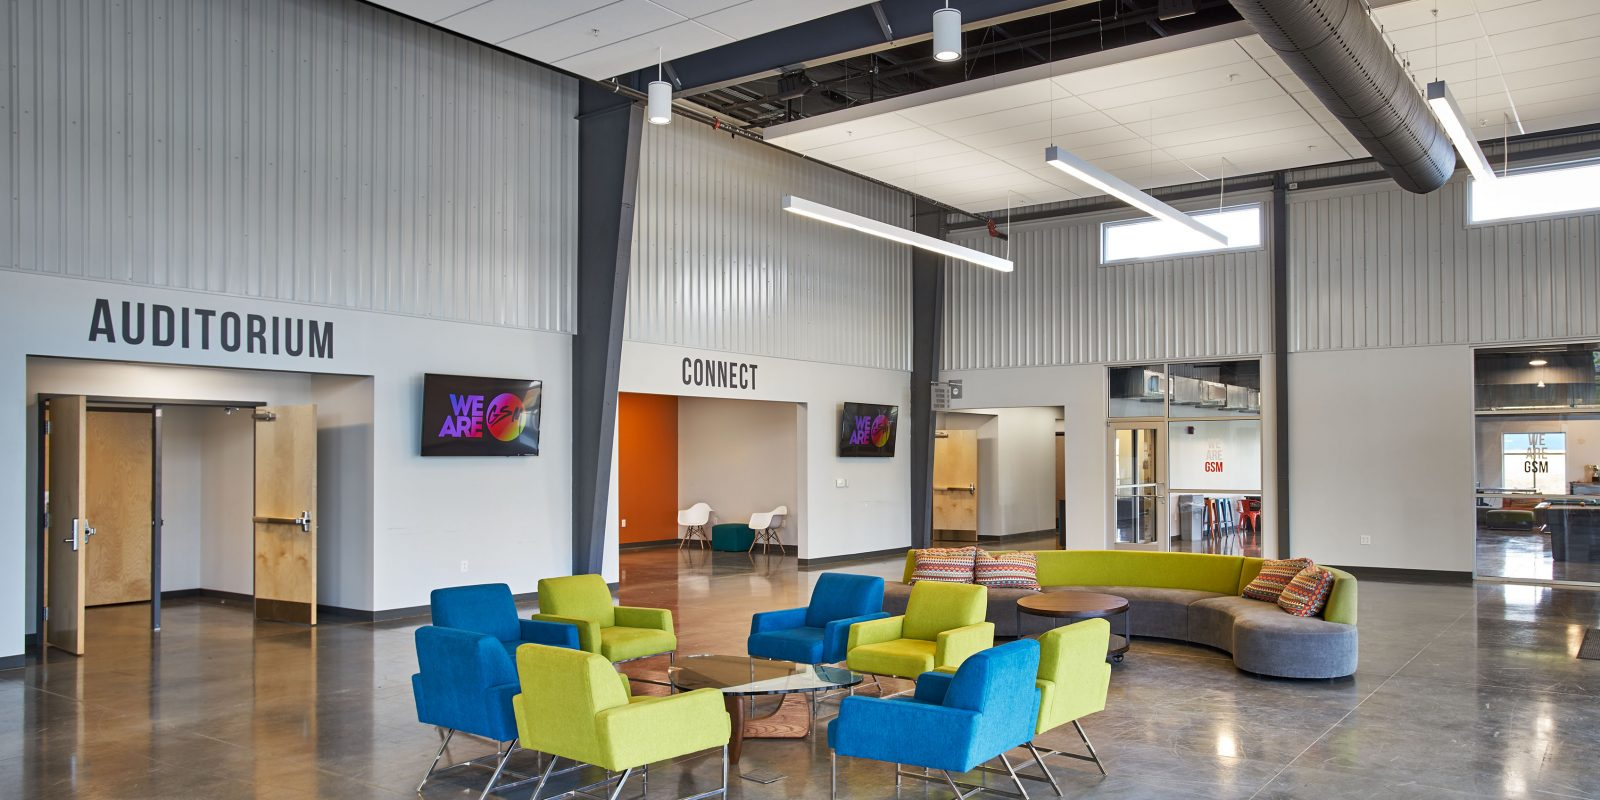 Grace student ministry studio four design for Interior design schools in knoxville tn